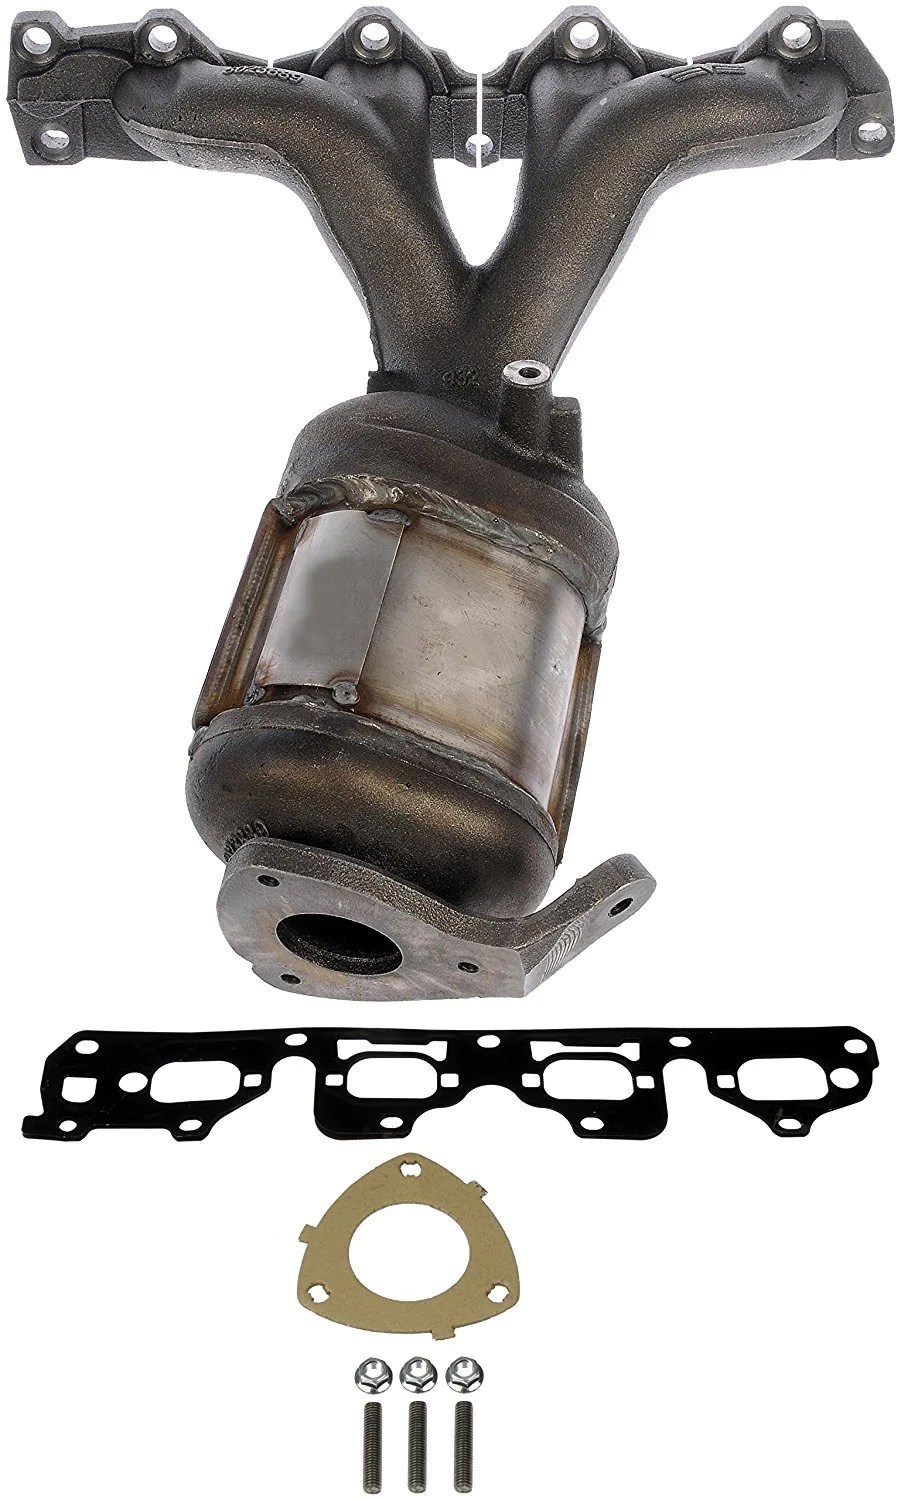 674 889 exhaust manifold with integrated catalytic converter 2004 2008 chevy malibu 2006 2008 pontiac g6 2007 2008 saturn aura non carb